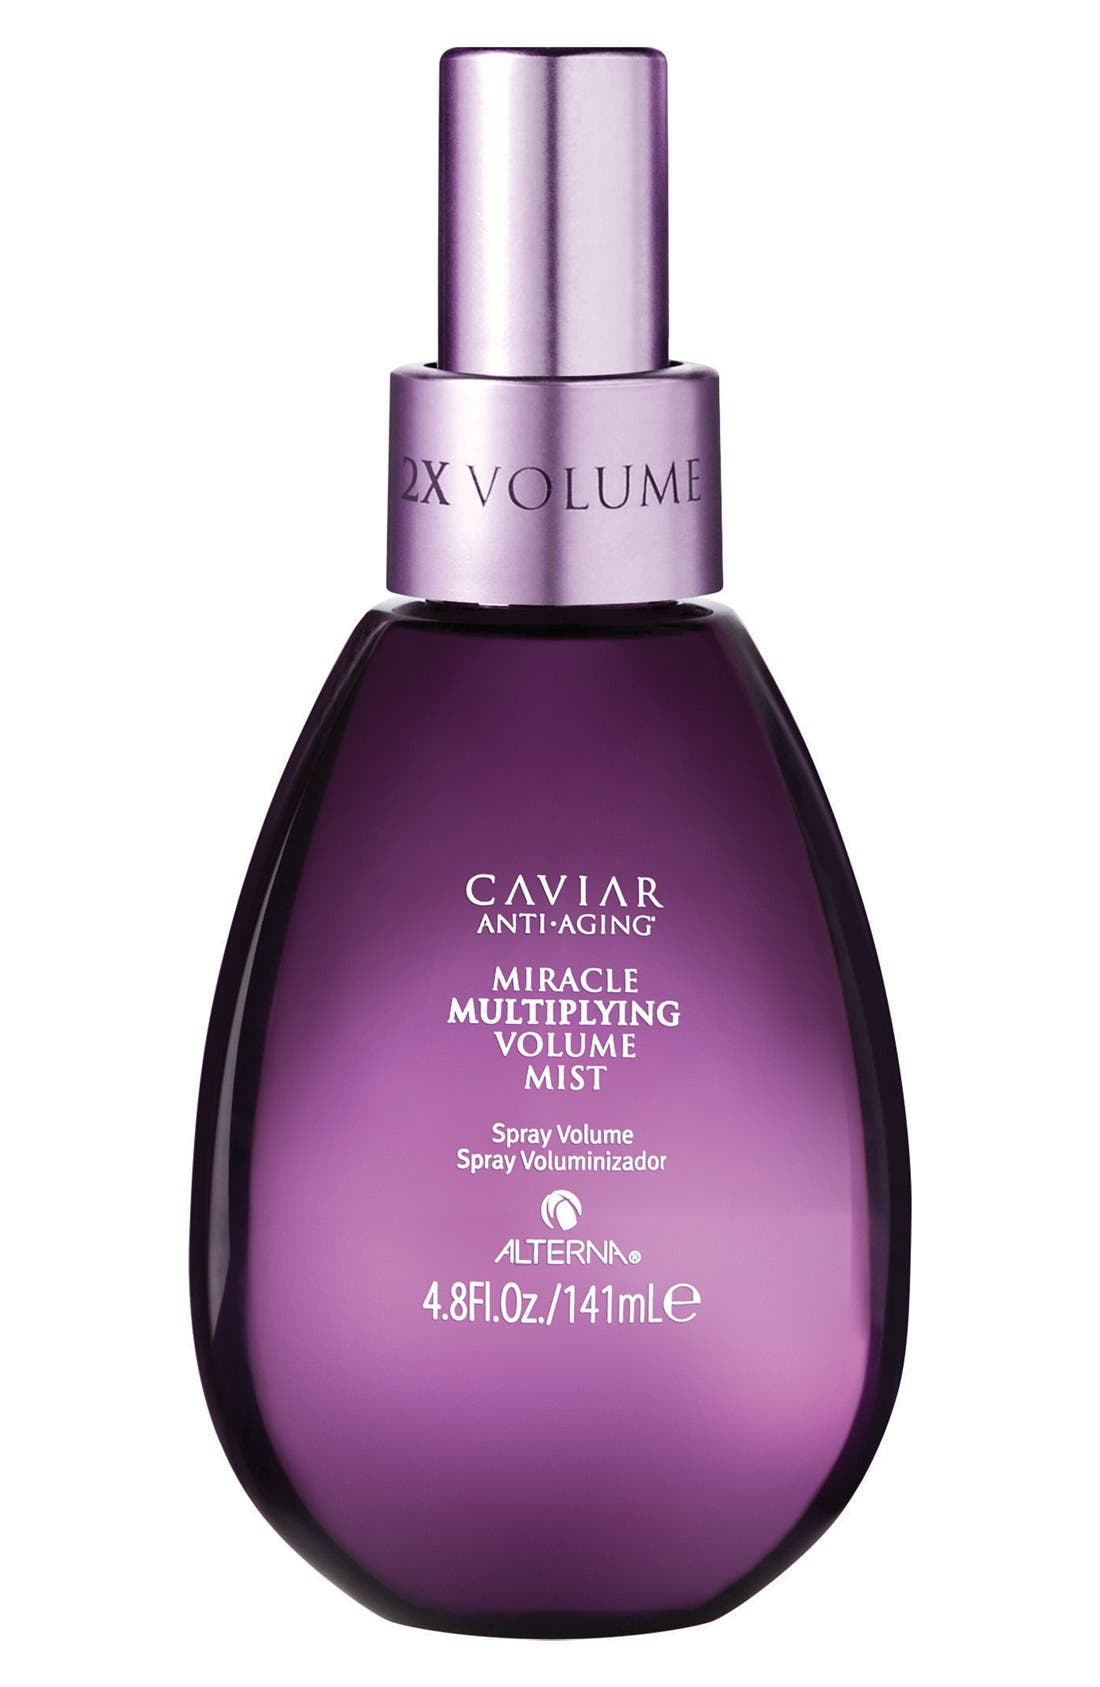 ALTERNA® Caviar Anti-Aging Miracle Multiplying Volume Mist